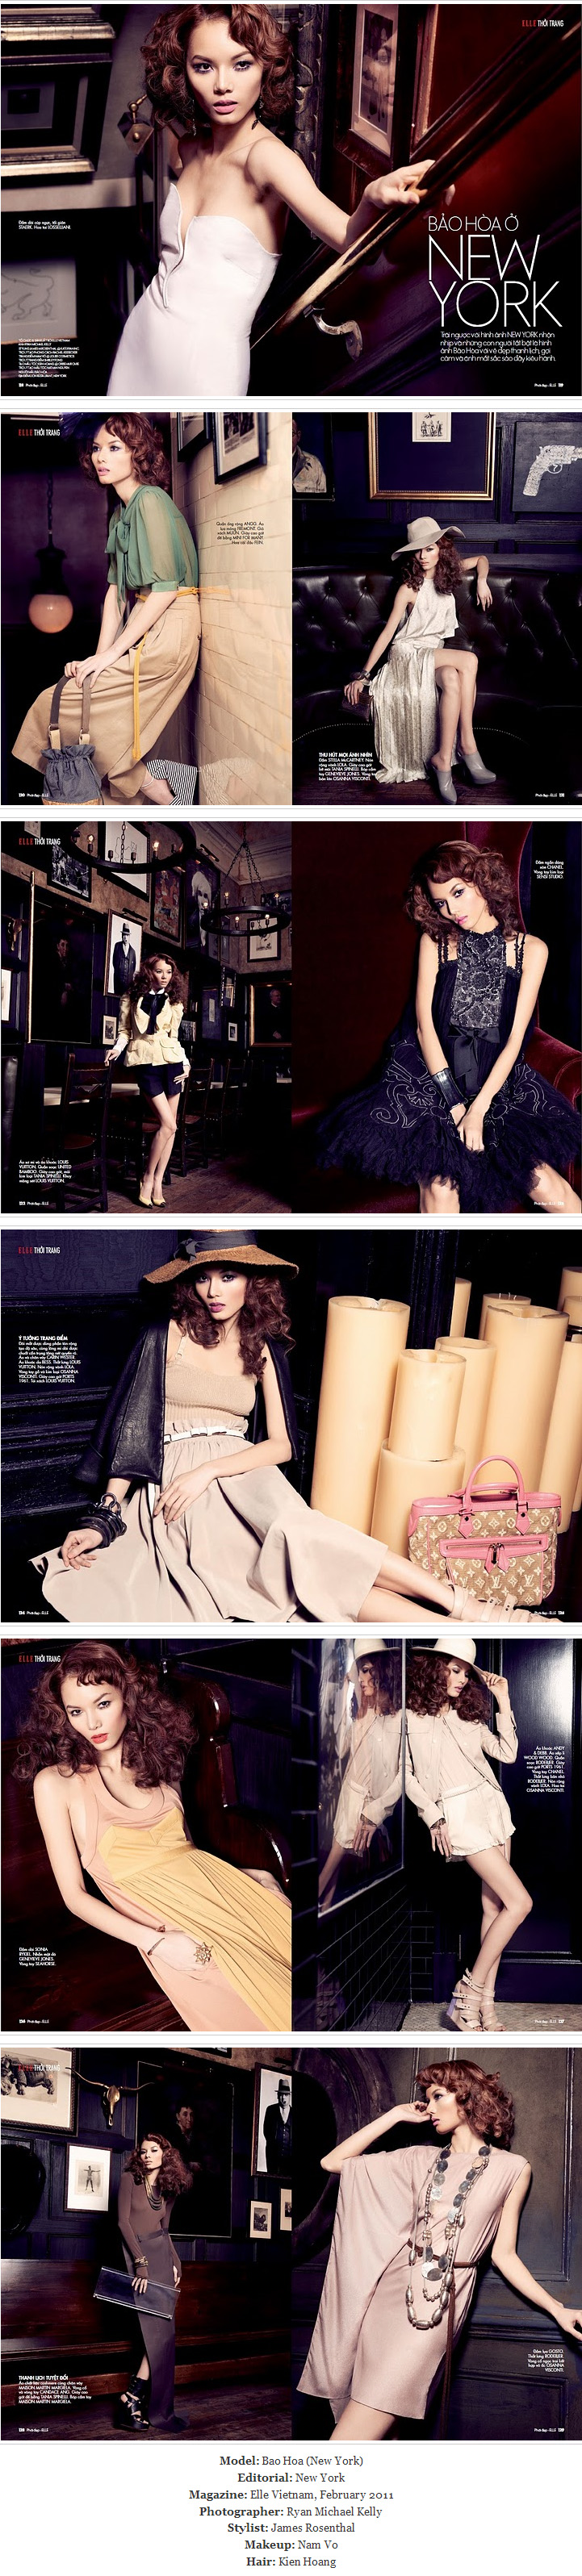 Asian Models- Bao Hoa in Editorial for Elle Vietnam, February 2011_1295706882608